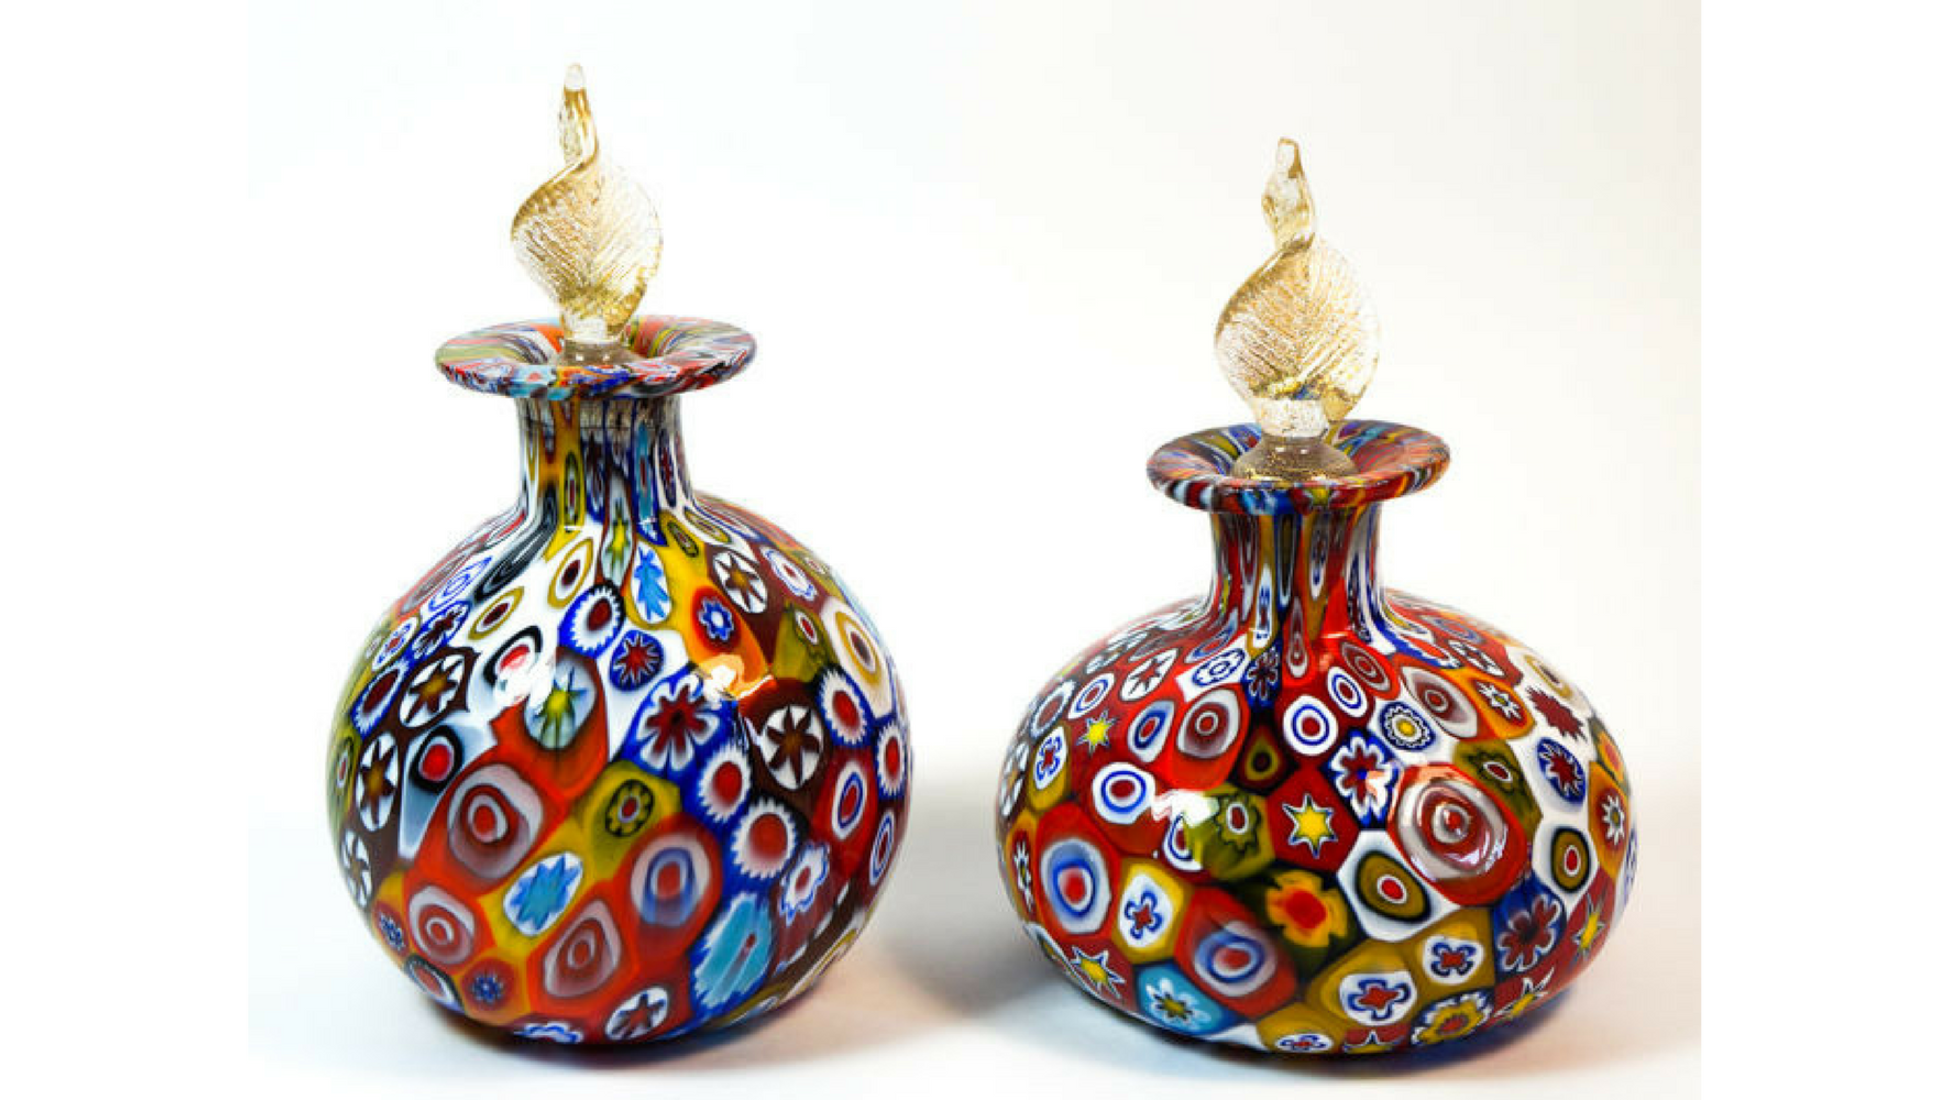 How to buy the famous murano glass from italy online catawiki distrust most generic labels on vintage pieces and even all generic signatures because they are almost certainly murano glass imitations reviewsmspy